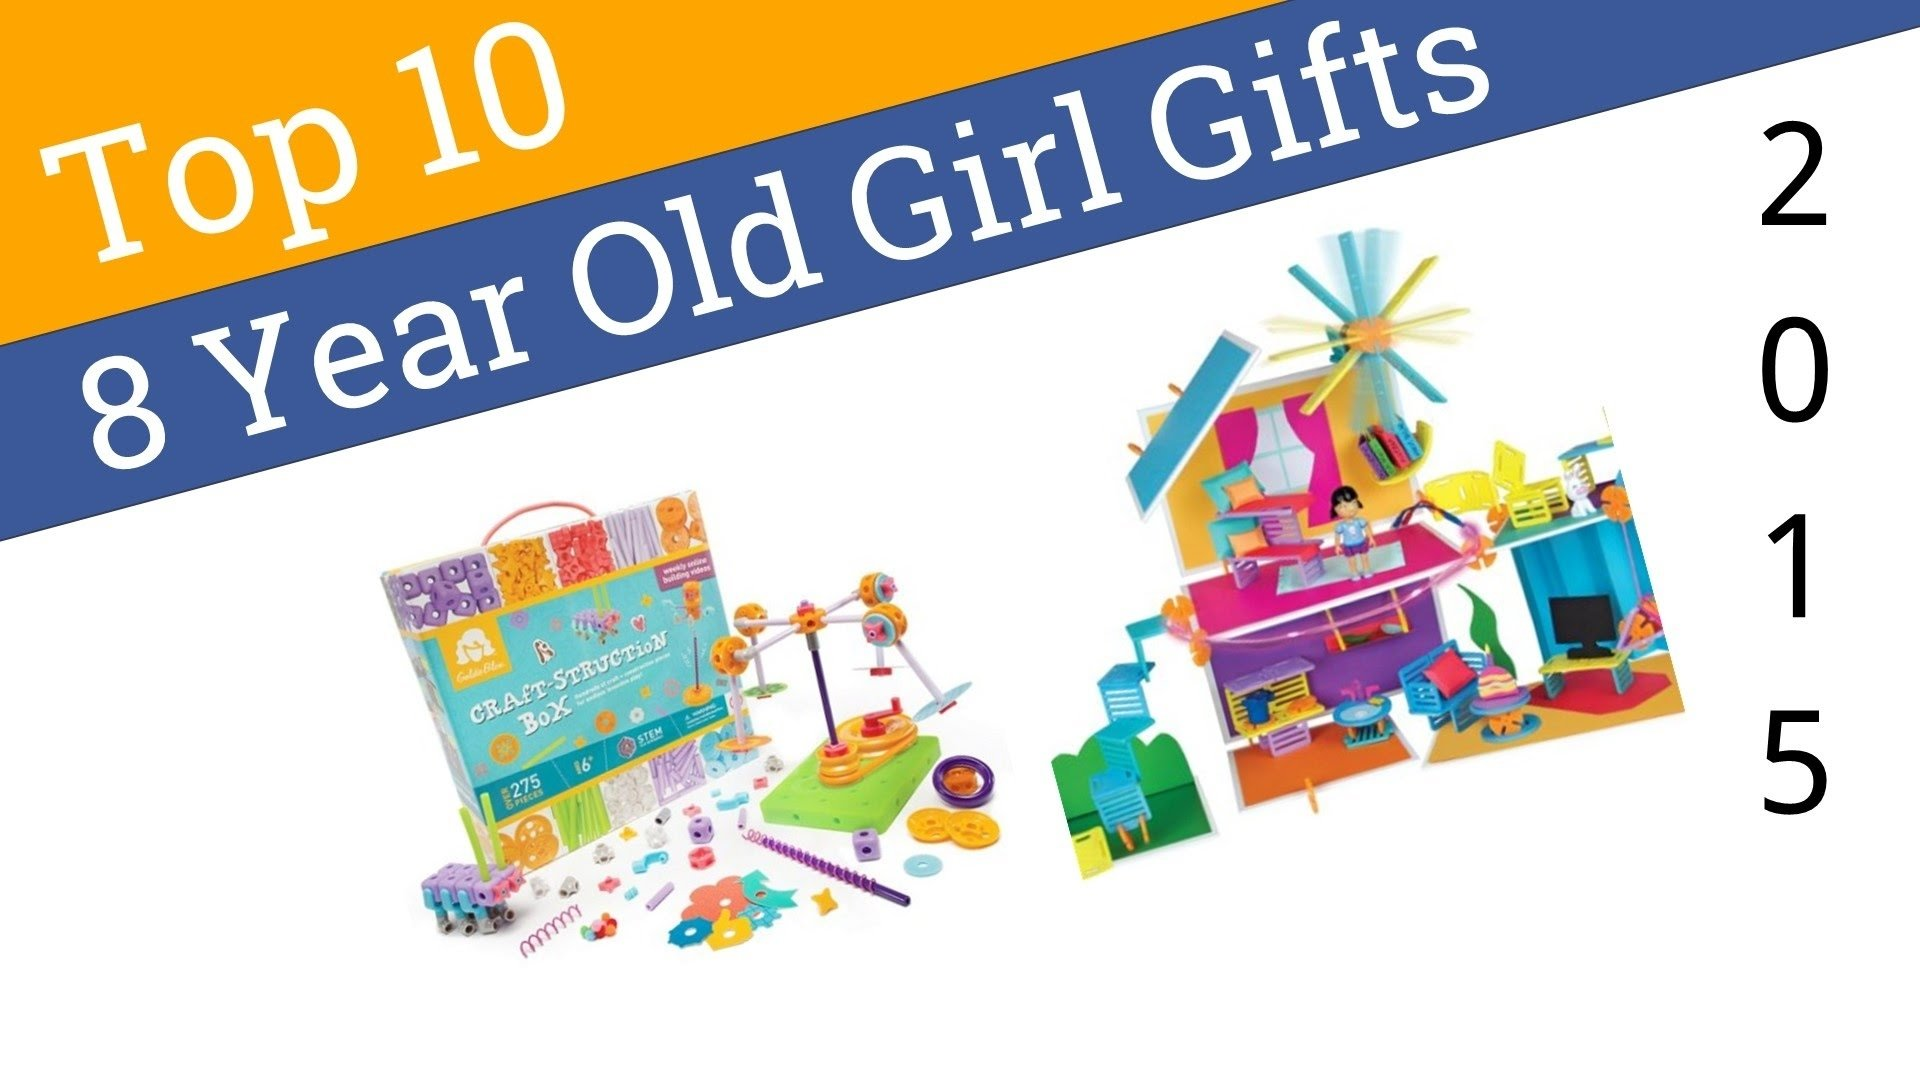 10 Unique 8 Year Old Girl Gift Ideas 10 best 8 year old girl gifts 2015 youtube 1 2021